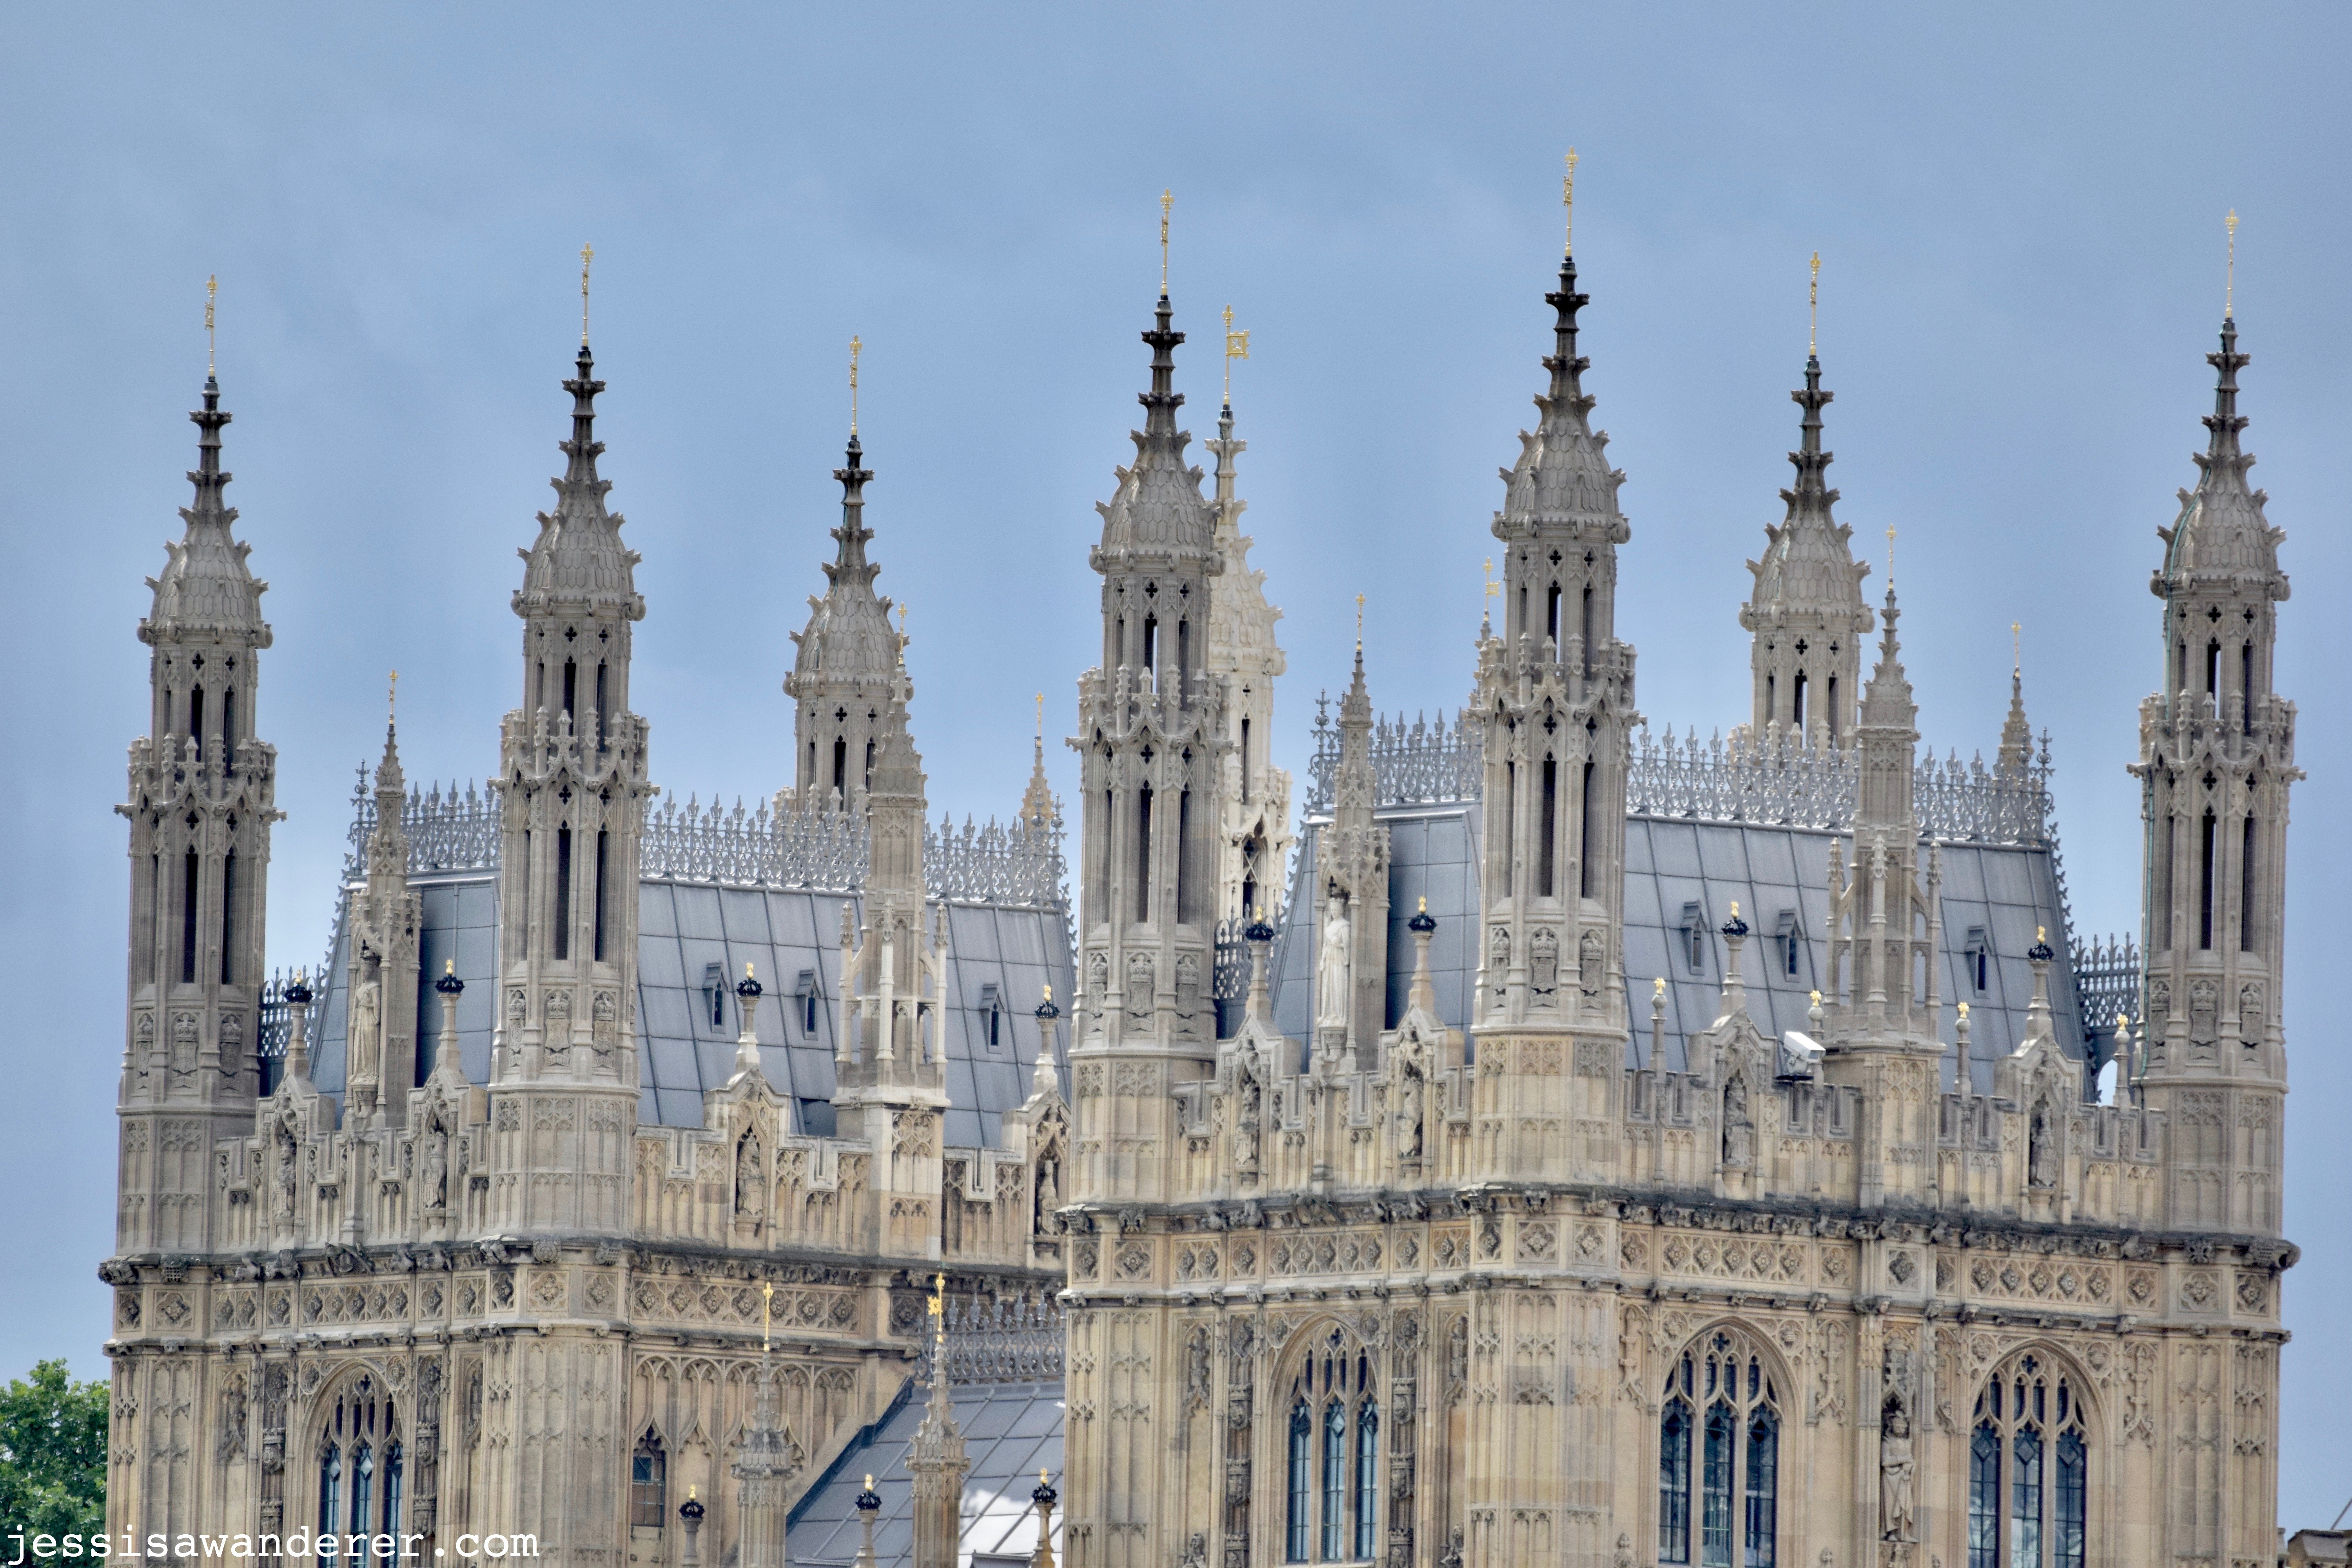 The Towers of Parliament